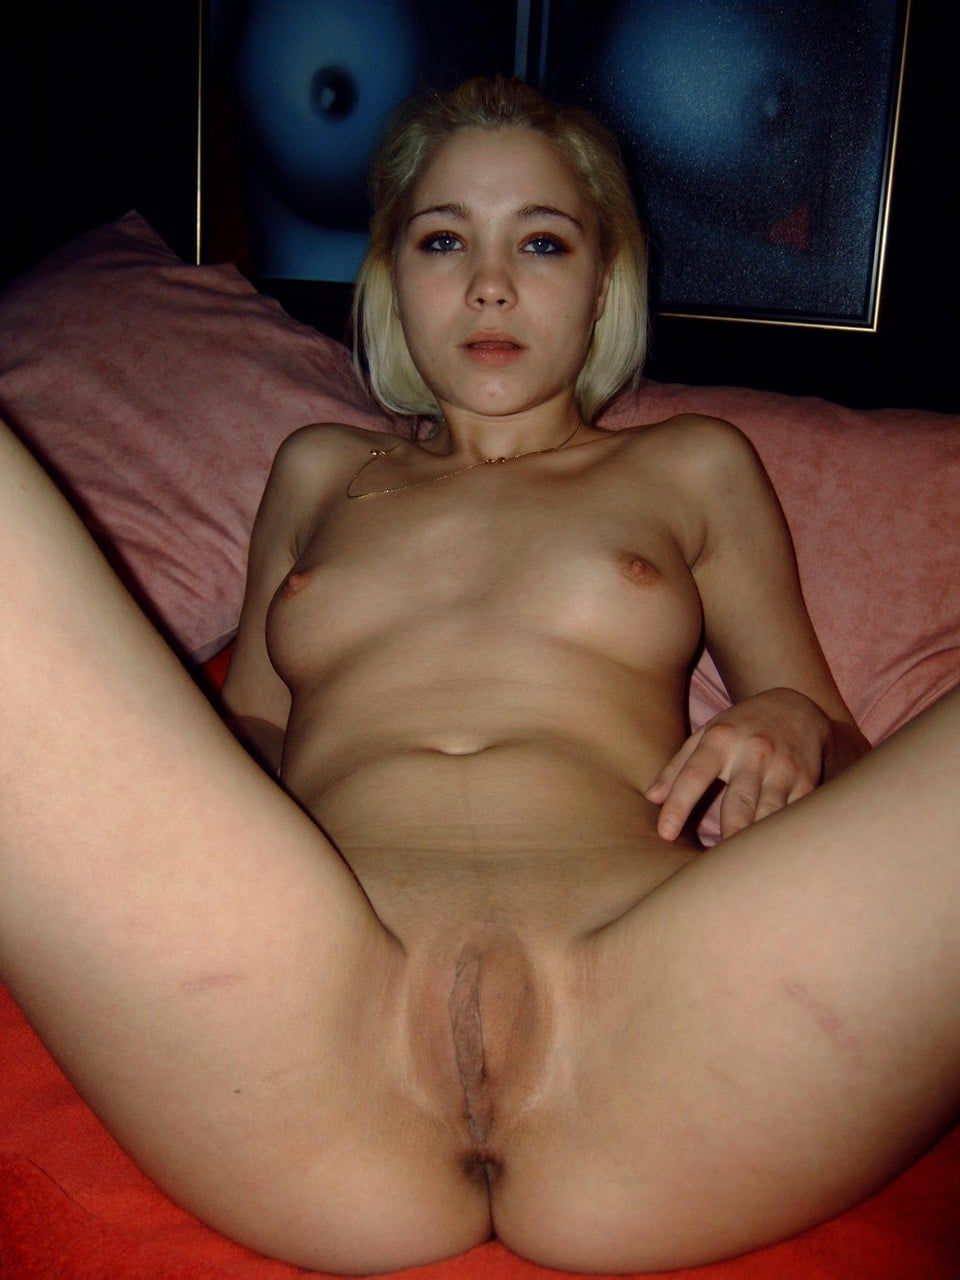 Teen amateur sex ass